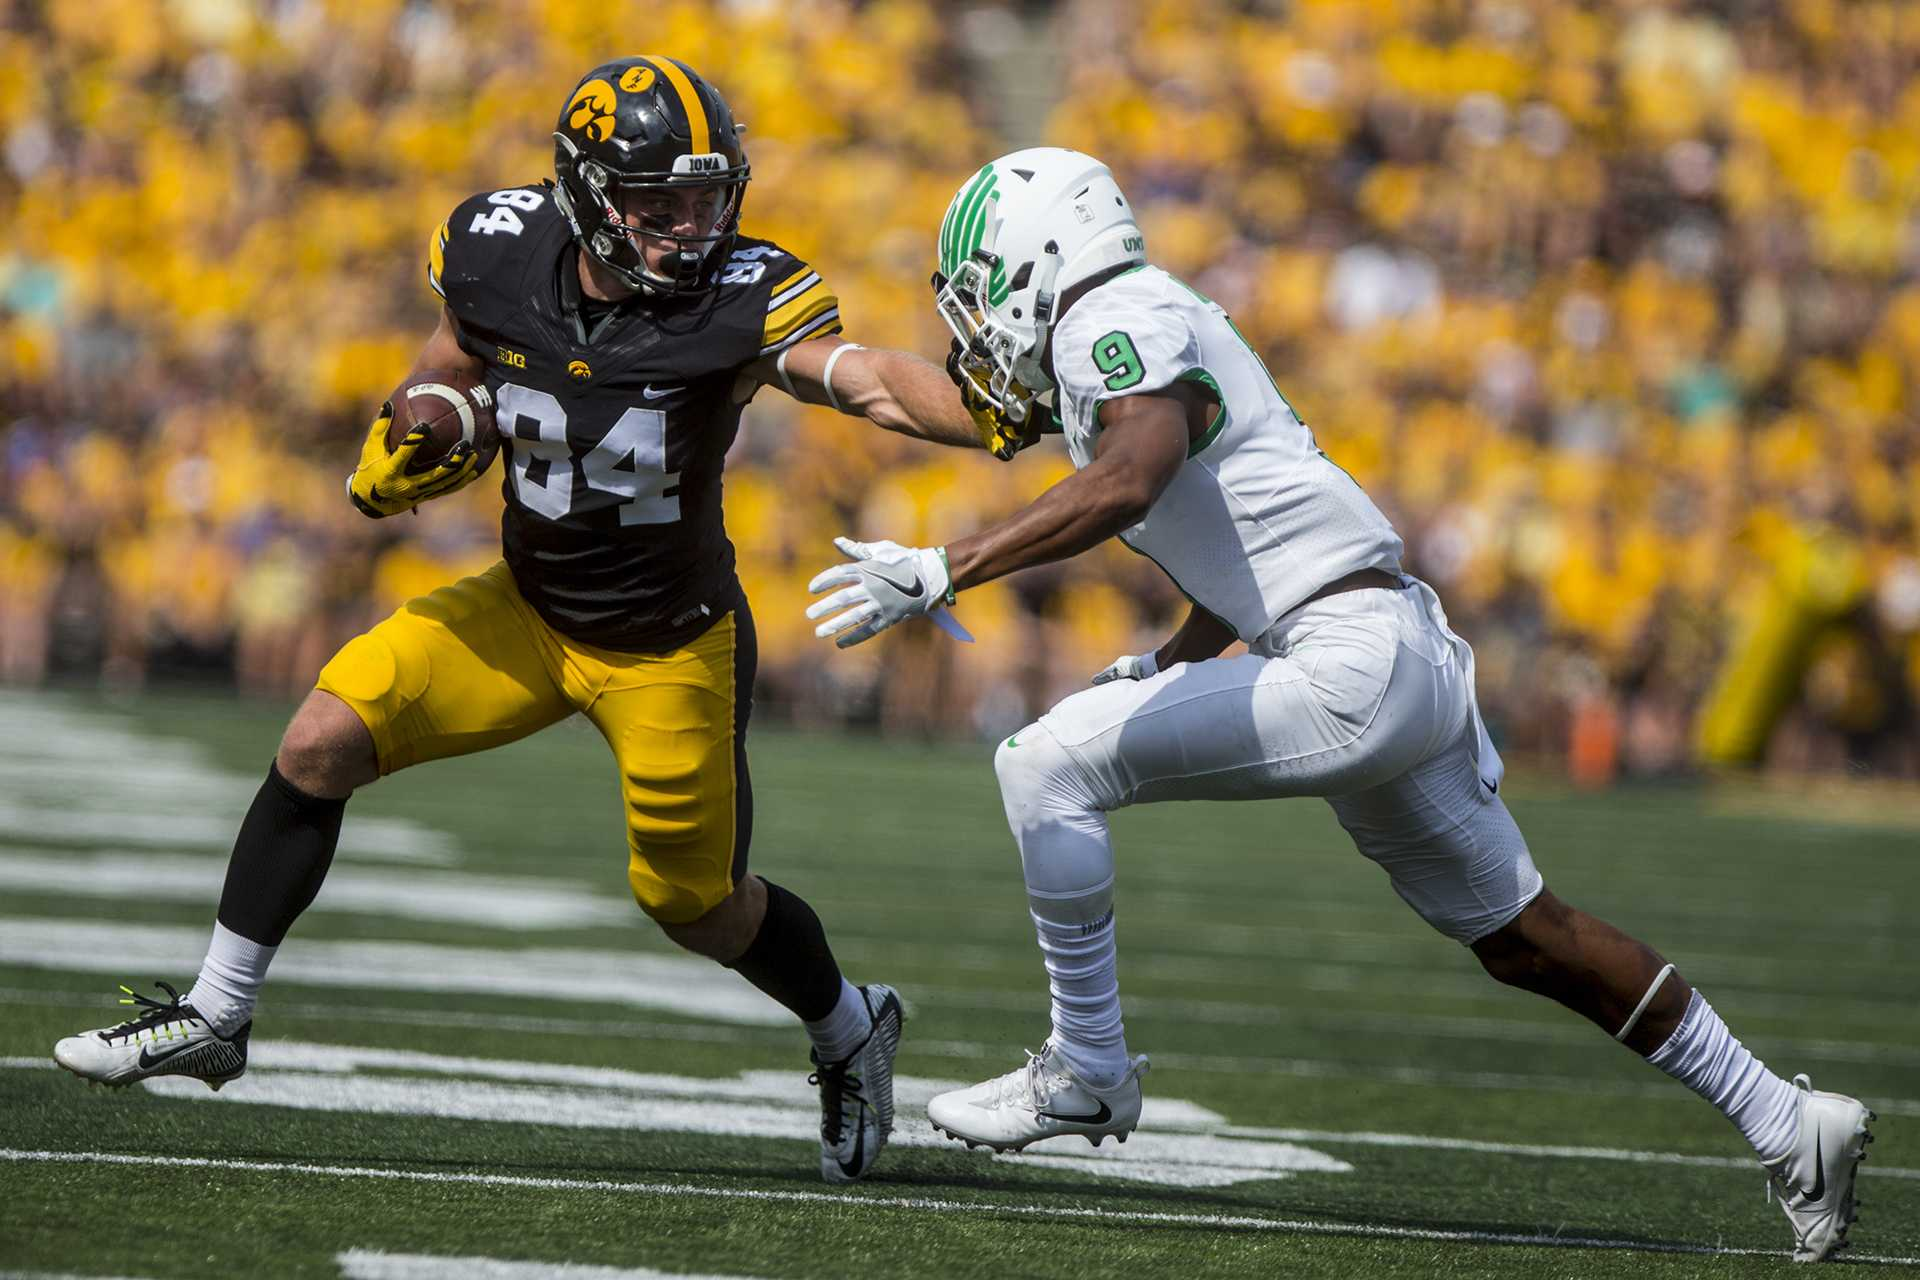 Iowa wide receiver Nick Easley stiff arms North Texas defensive back Nate Brooks during the game between Iowa and North Texas at Kinnick Stadium on Saturday, Sept. 16, 2017. The Hawkeyes went on to defeat the Mean Green 31-14. (Ben Smith/The Daily Iowan)